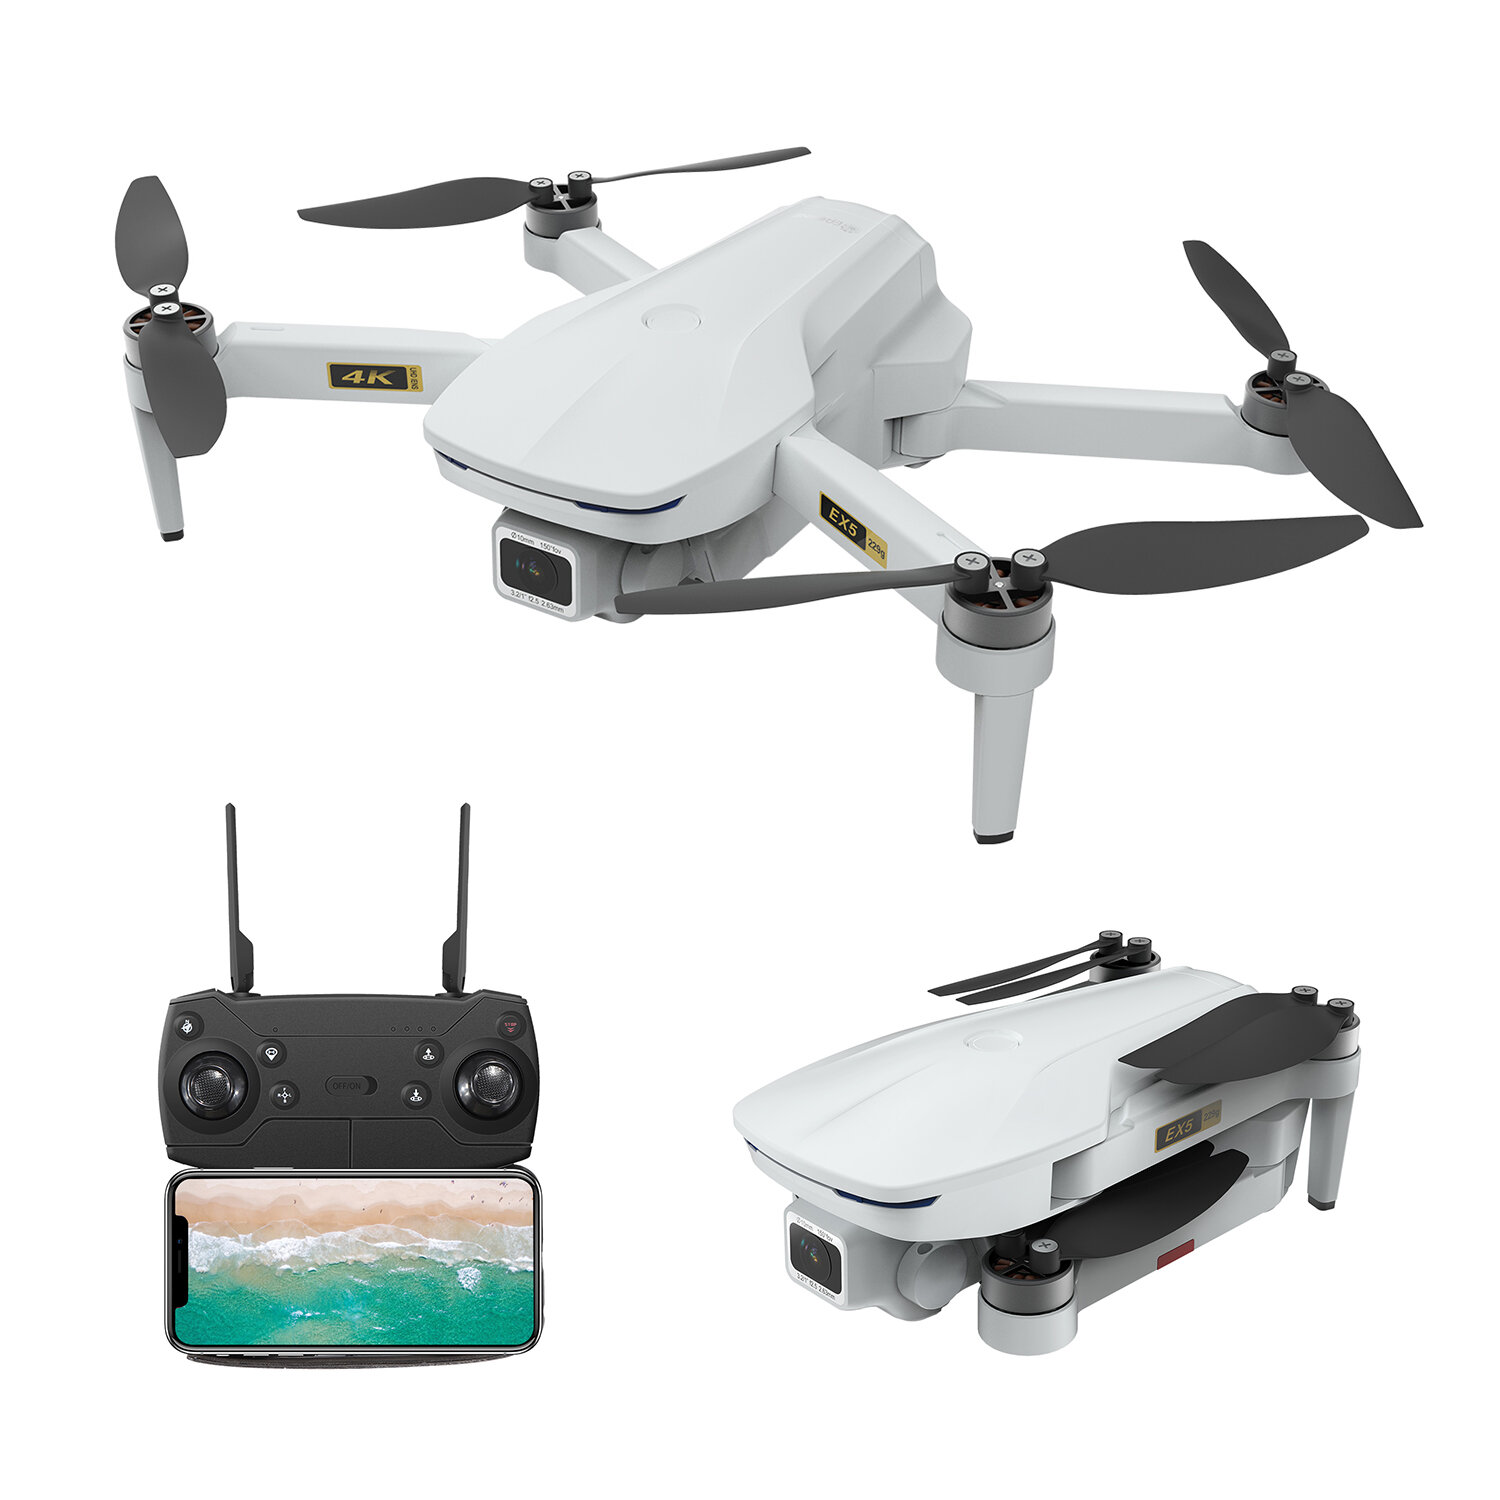 ZLRC SG107 HD Aerial Folding Drone With Switchable 4K Optical Flow Dual Cameras 50X Zoom RC Quadcopter RTF - 1